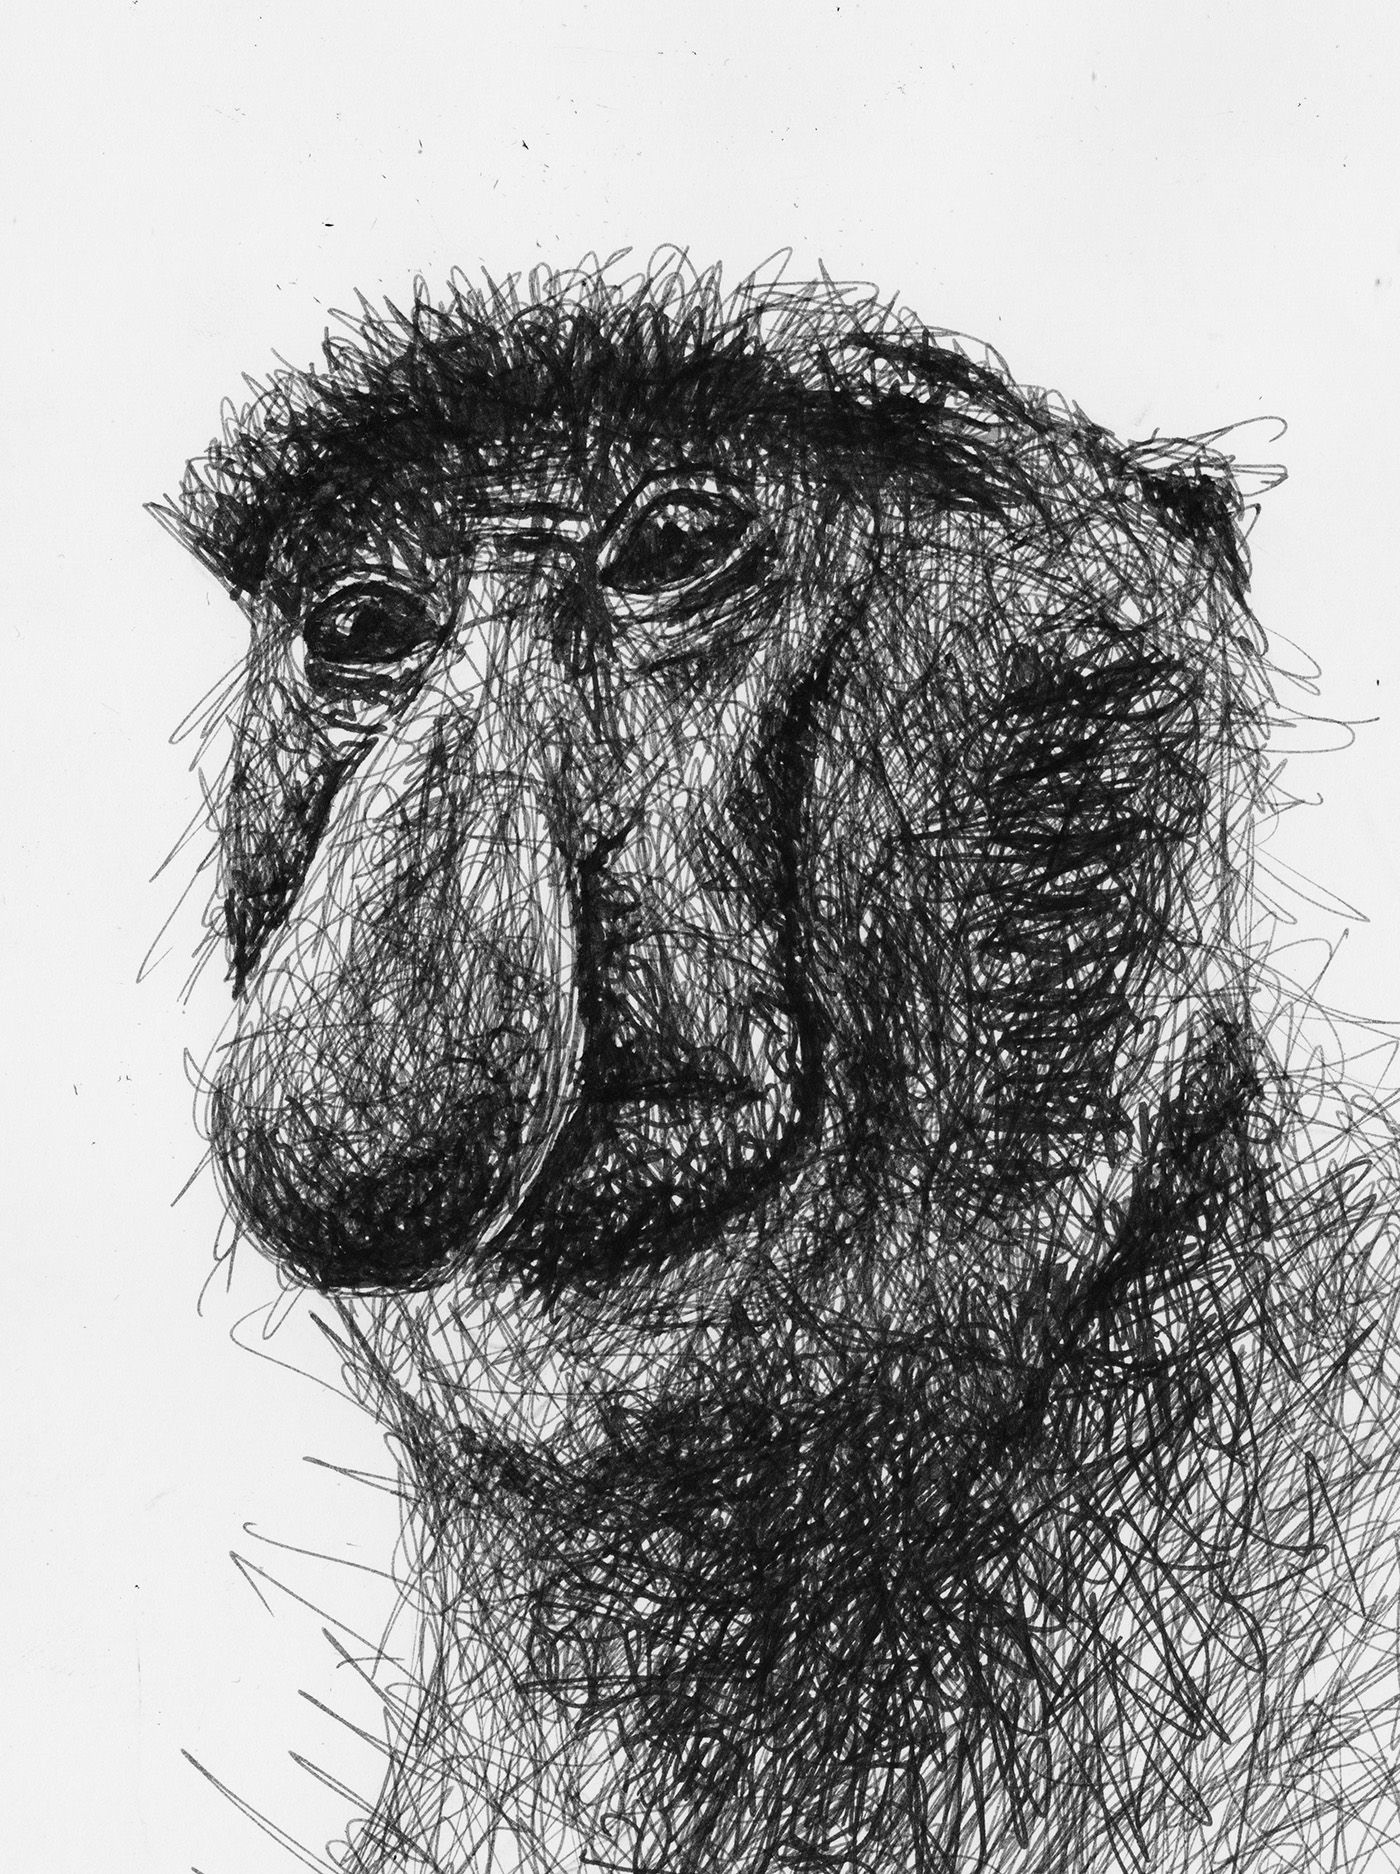 Scribble drawing of a proboscis monkey by filip walczak